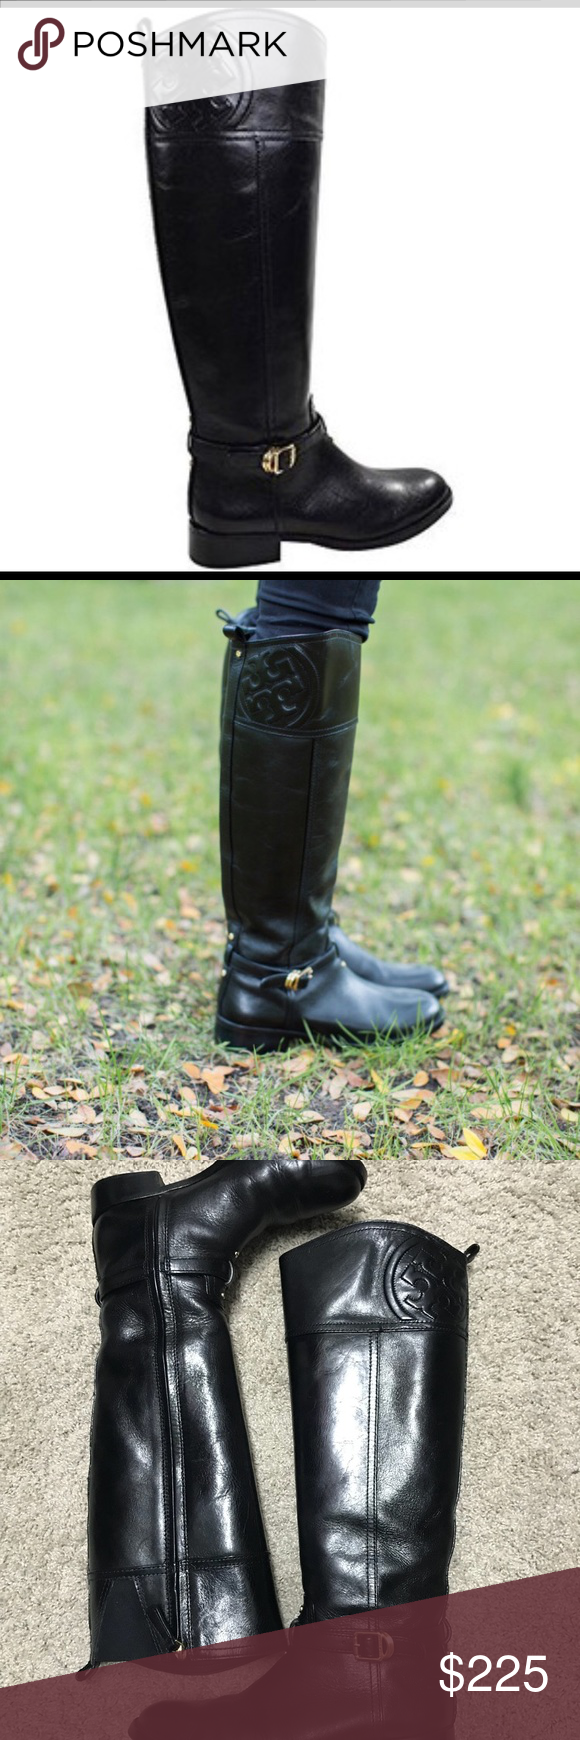 8db84aac83c Tory Burch Marlene Riding Boot Tory Burch Black Marlene Tall Leather Riding  Boots Size  7